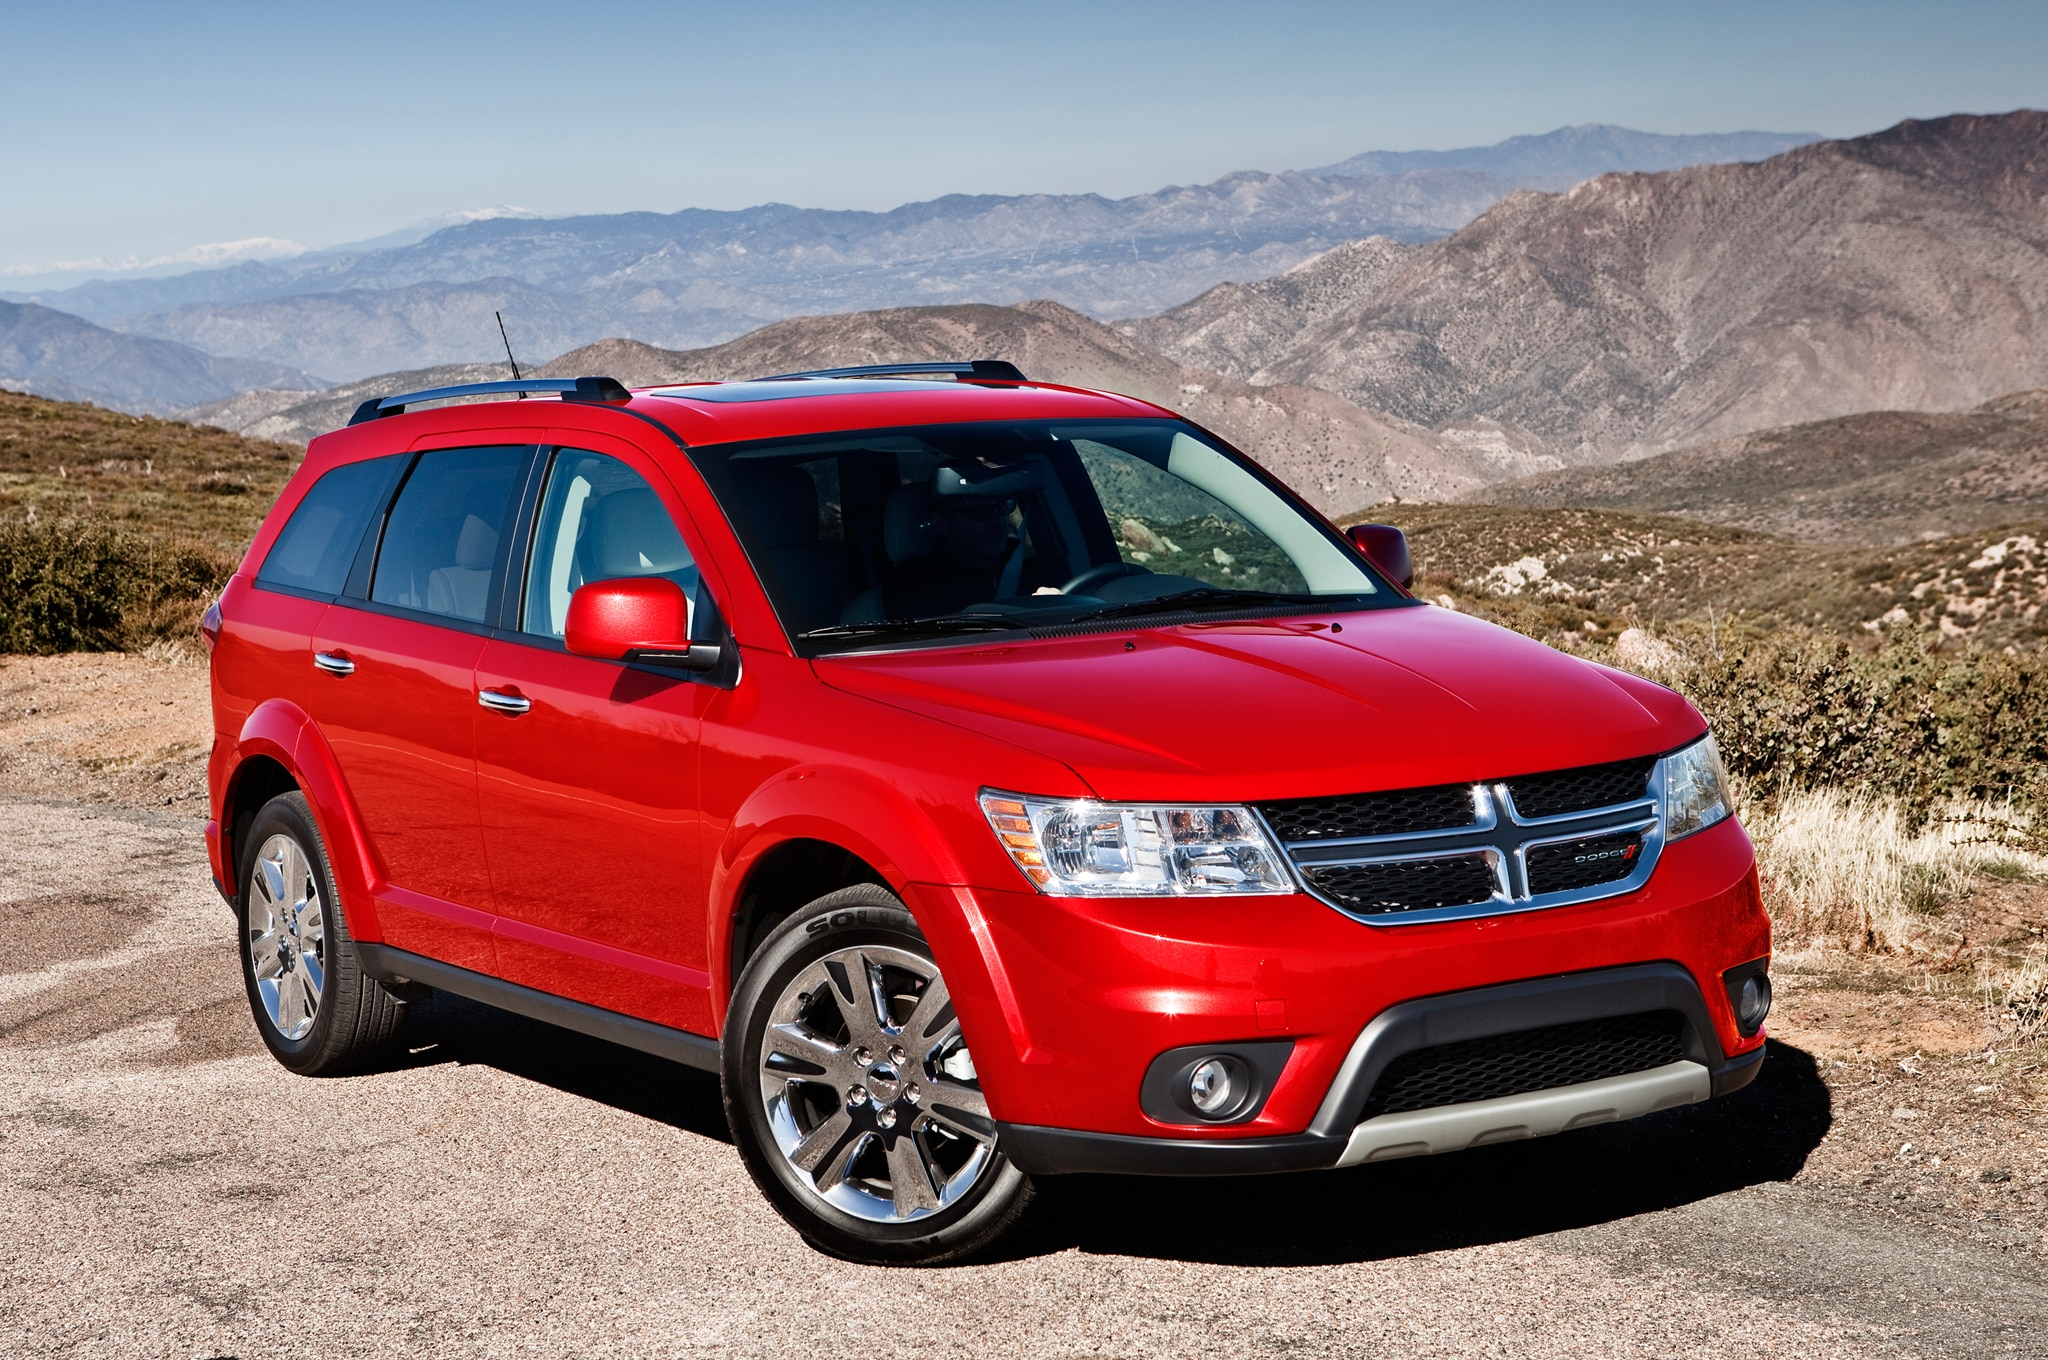 medium resolution of 2014 dodge journey front three quarters view